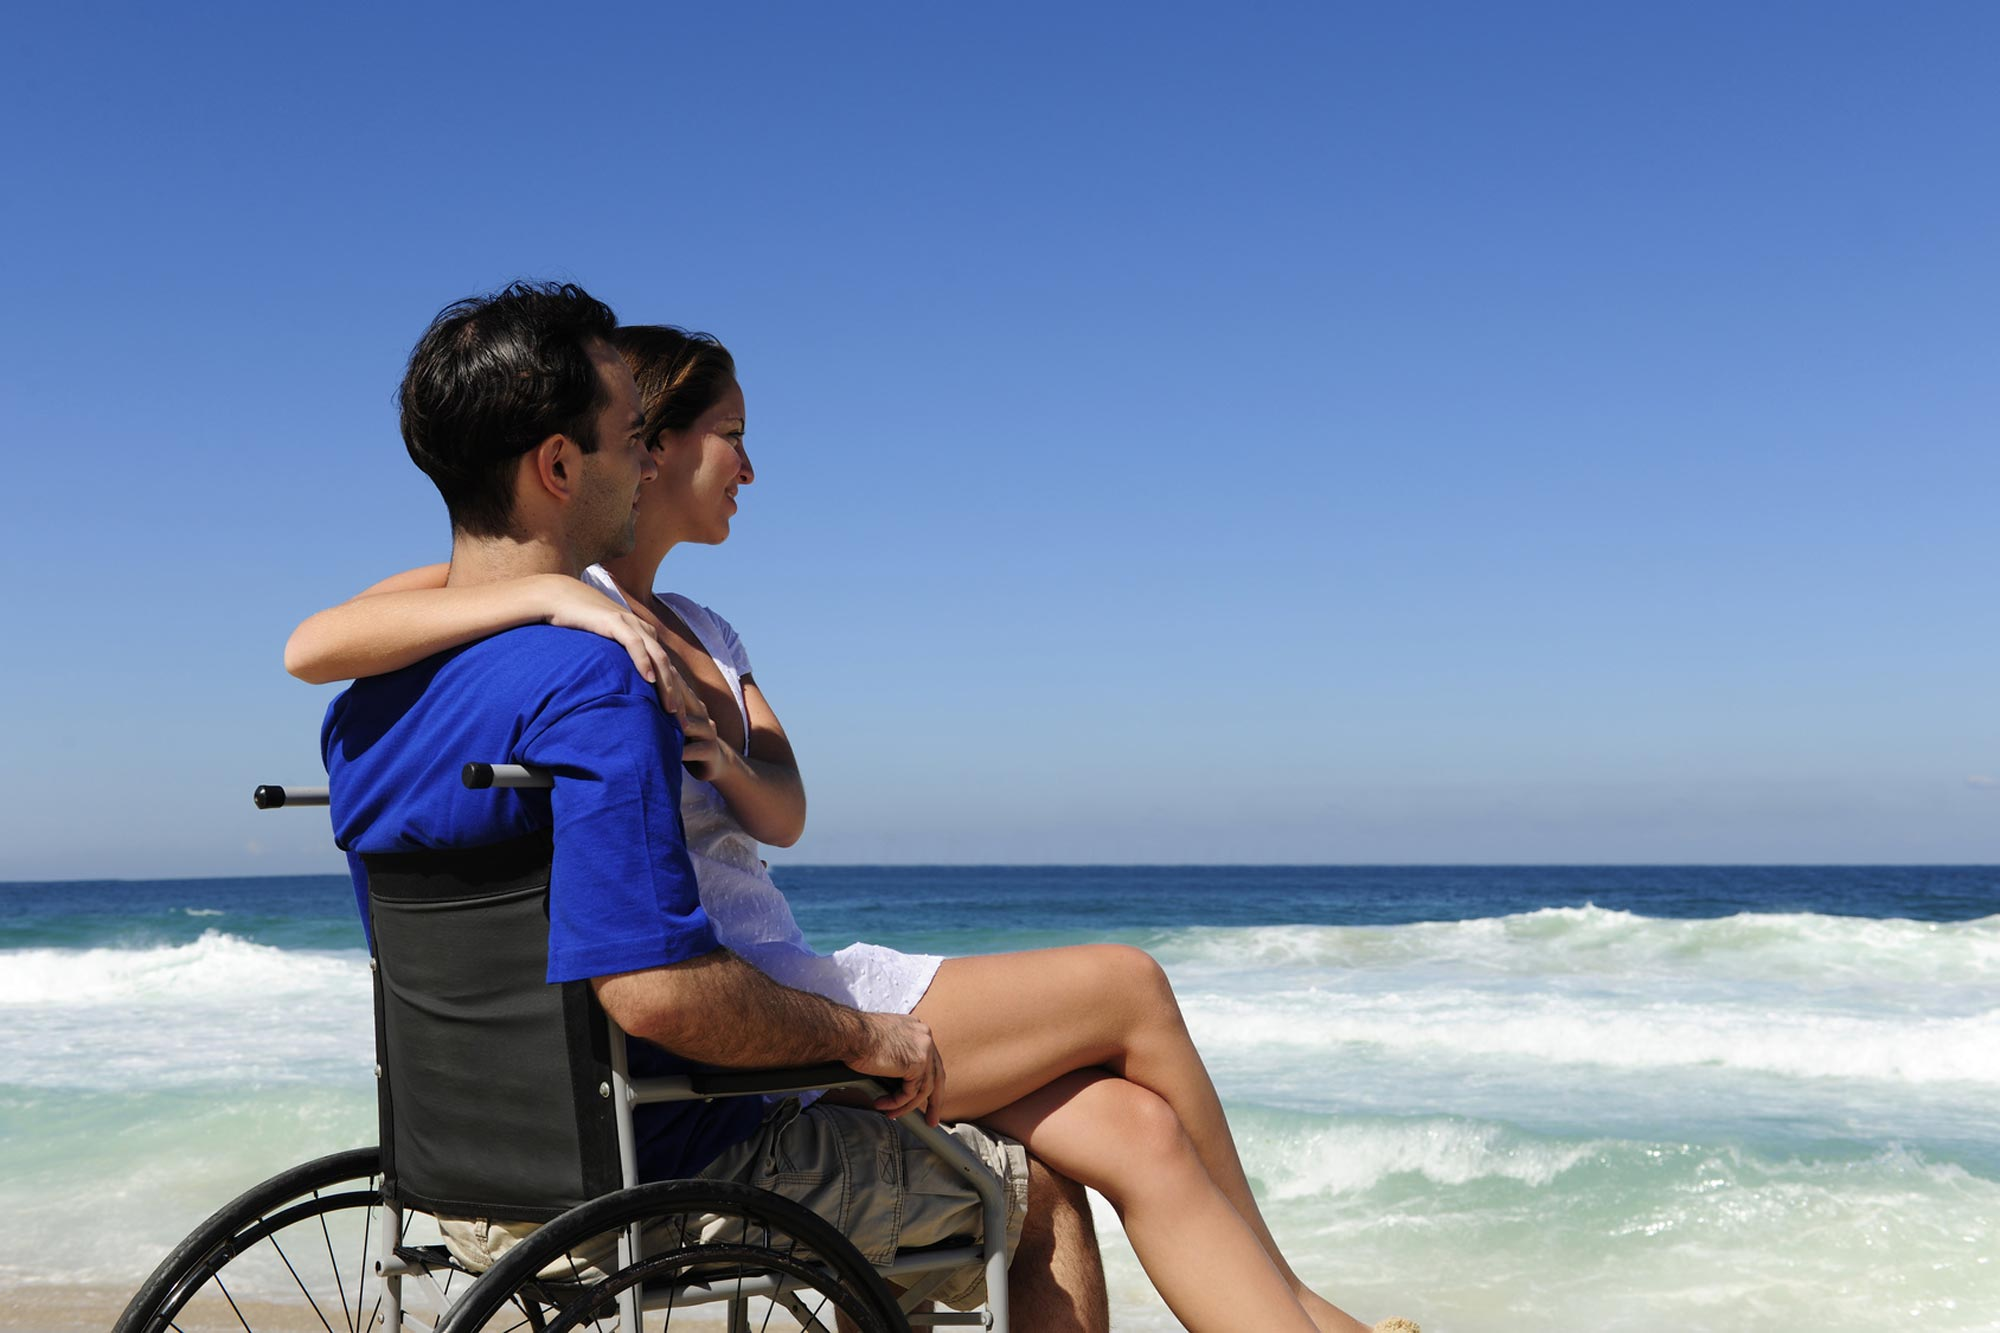 Dating While Disabled